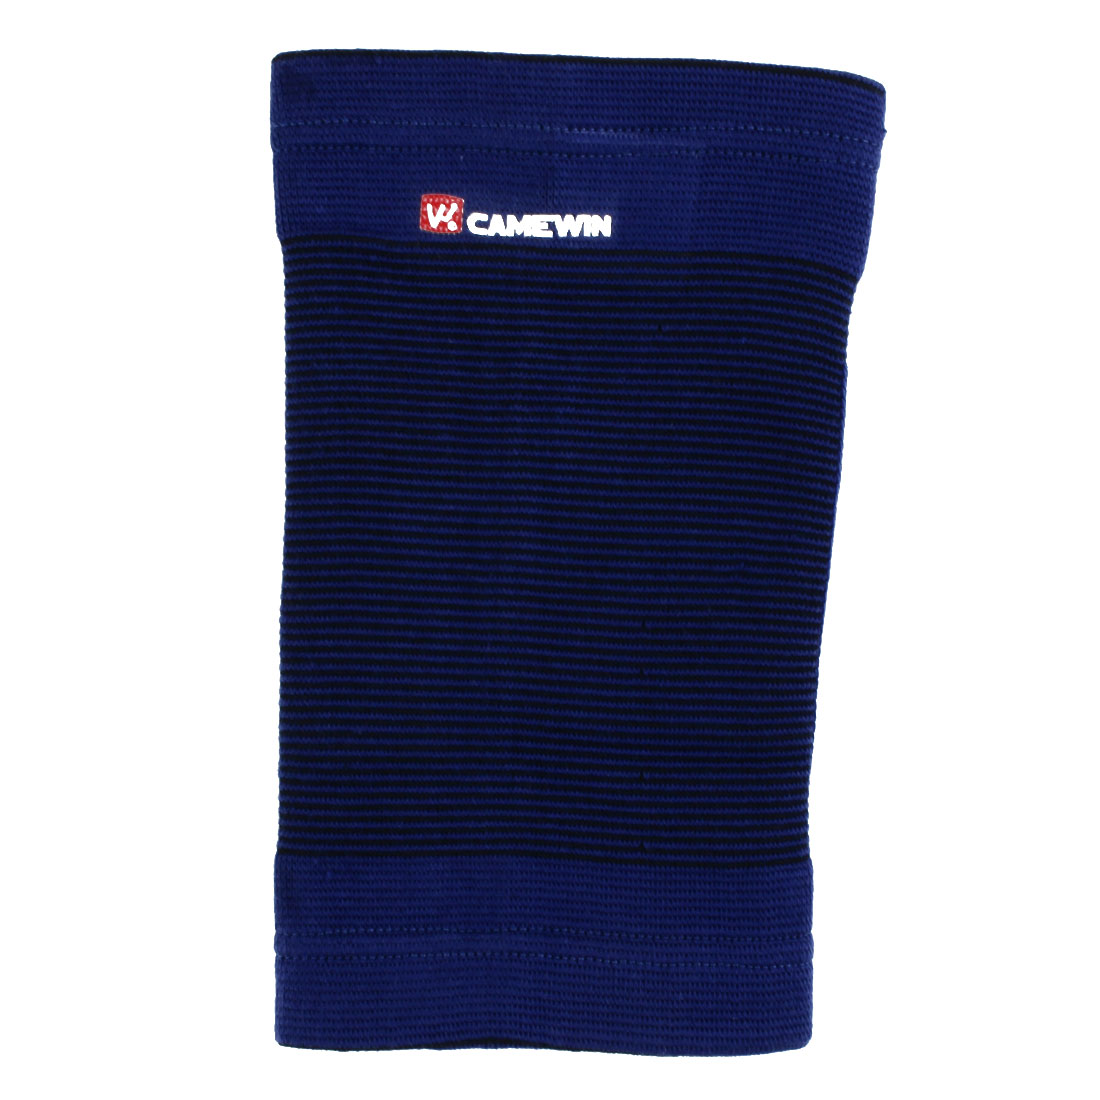 Fitting Stretchy Black Blue Knee Sleeve Support Protector